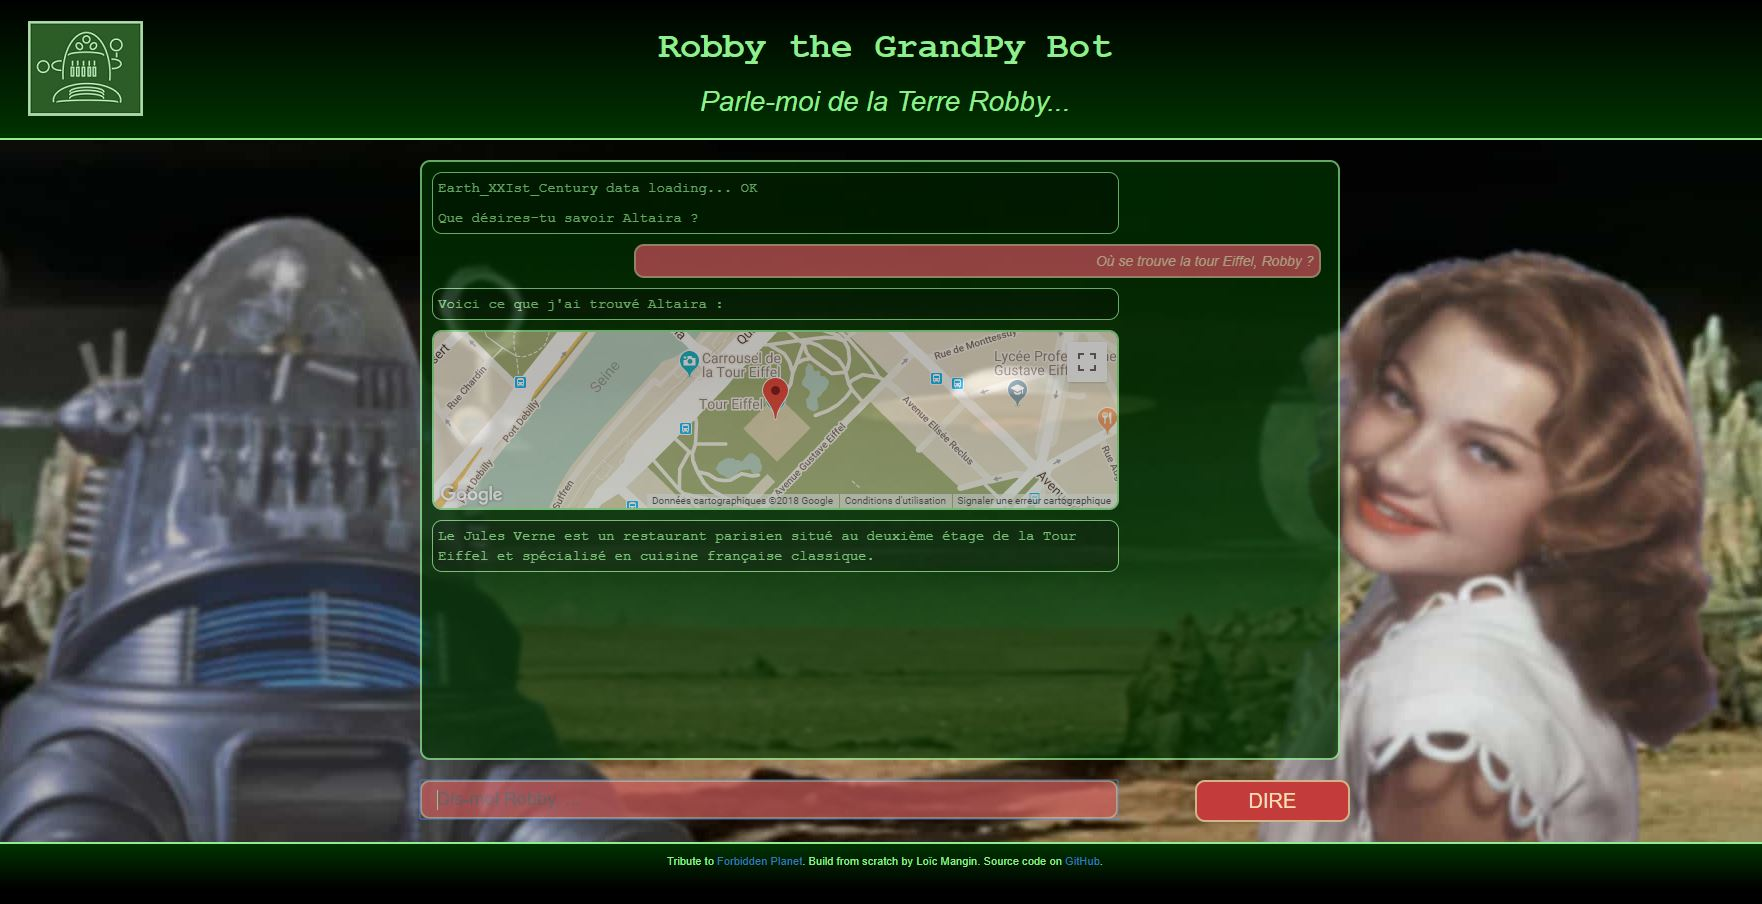 A screenshot of grandpybot app